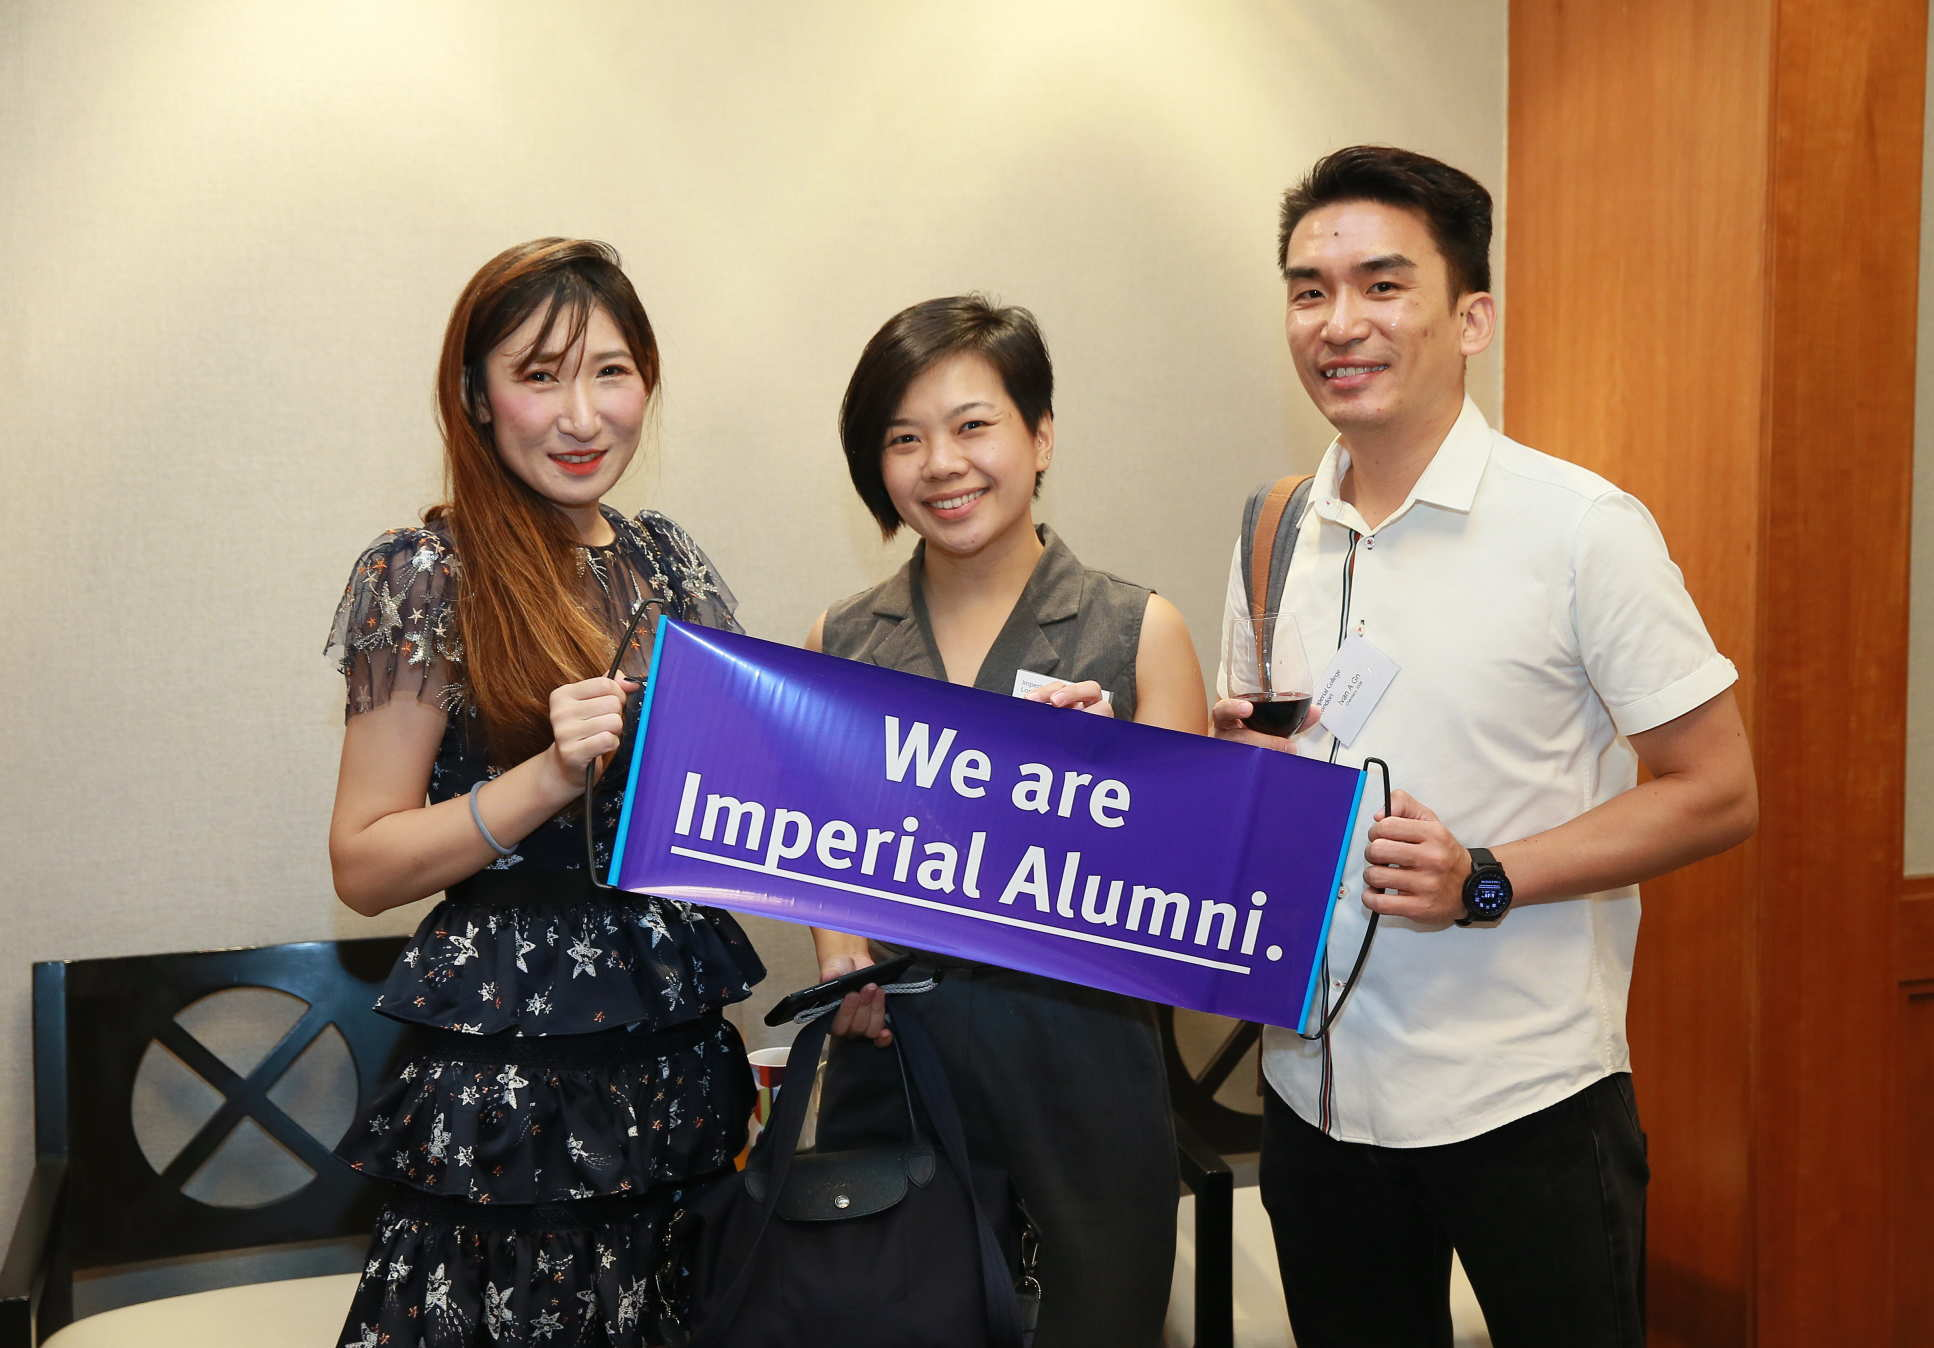 Alumni at the special event in Singapore